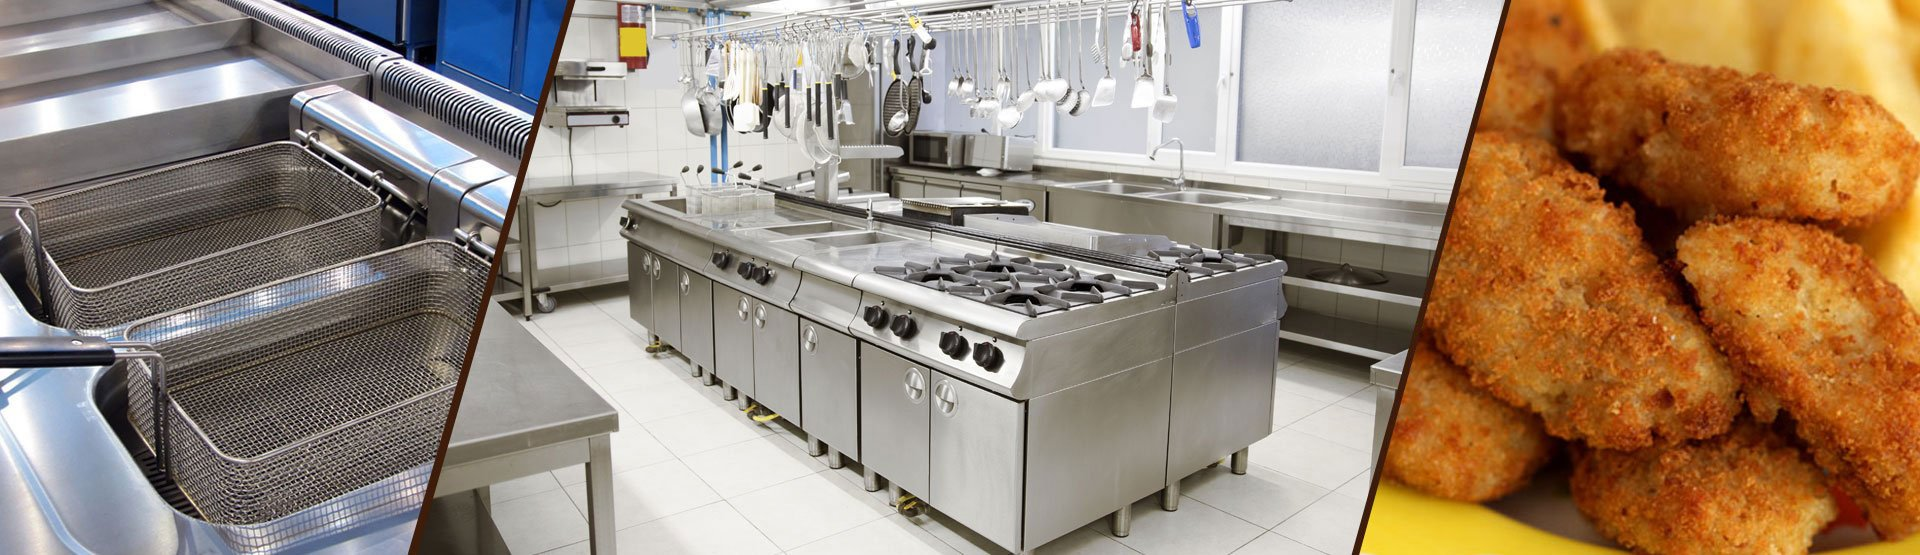 fresh food and catering equipment